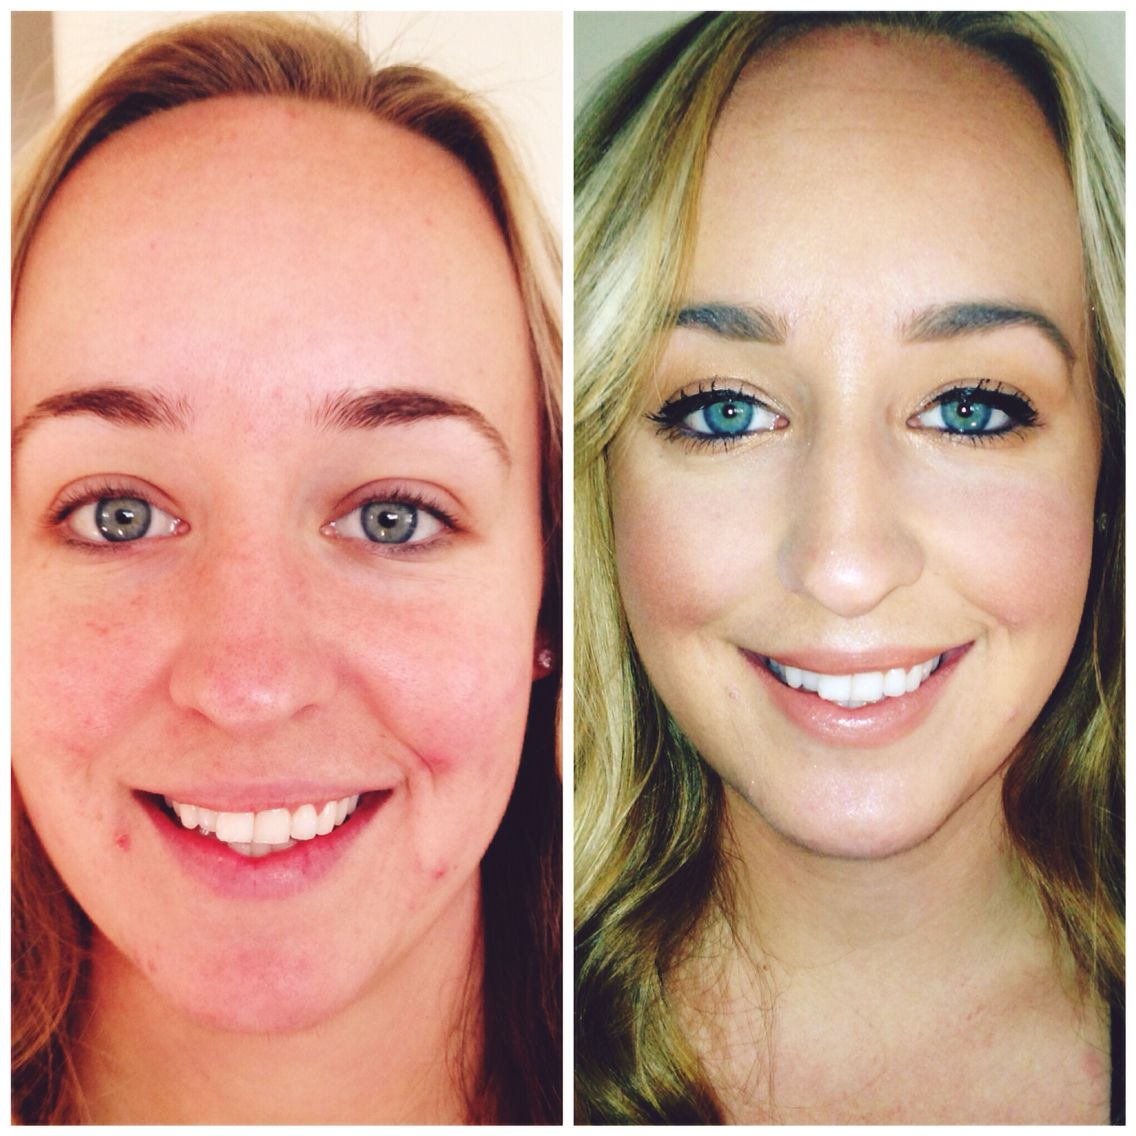 Before & after using all nontoxic makeup & skincare